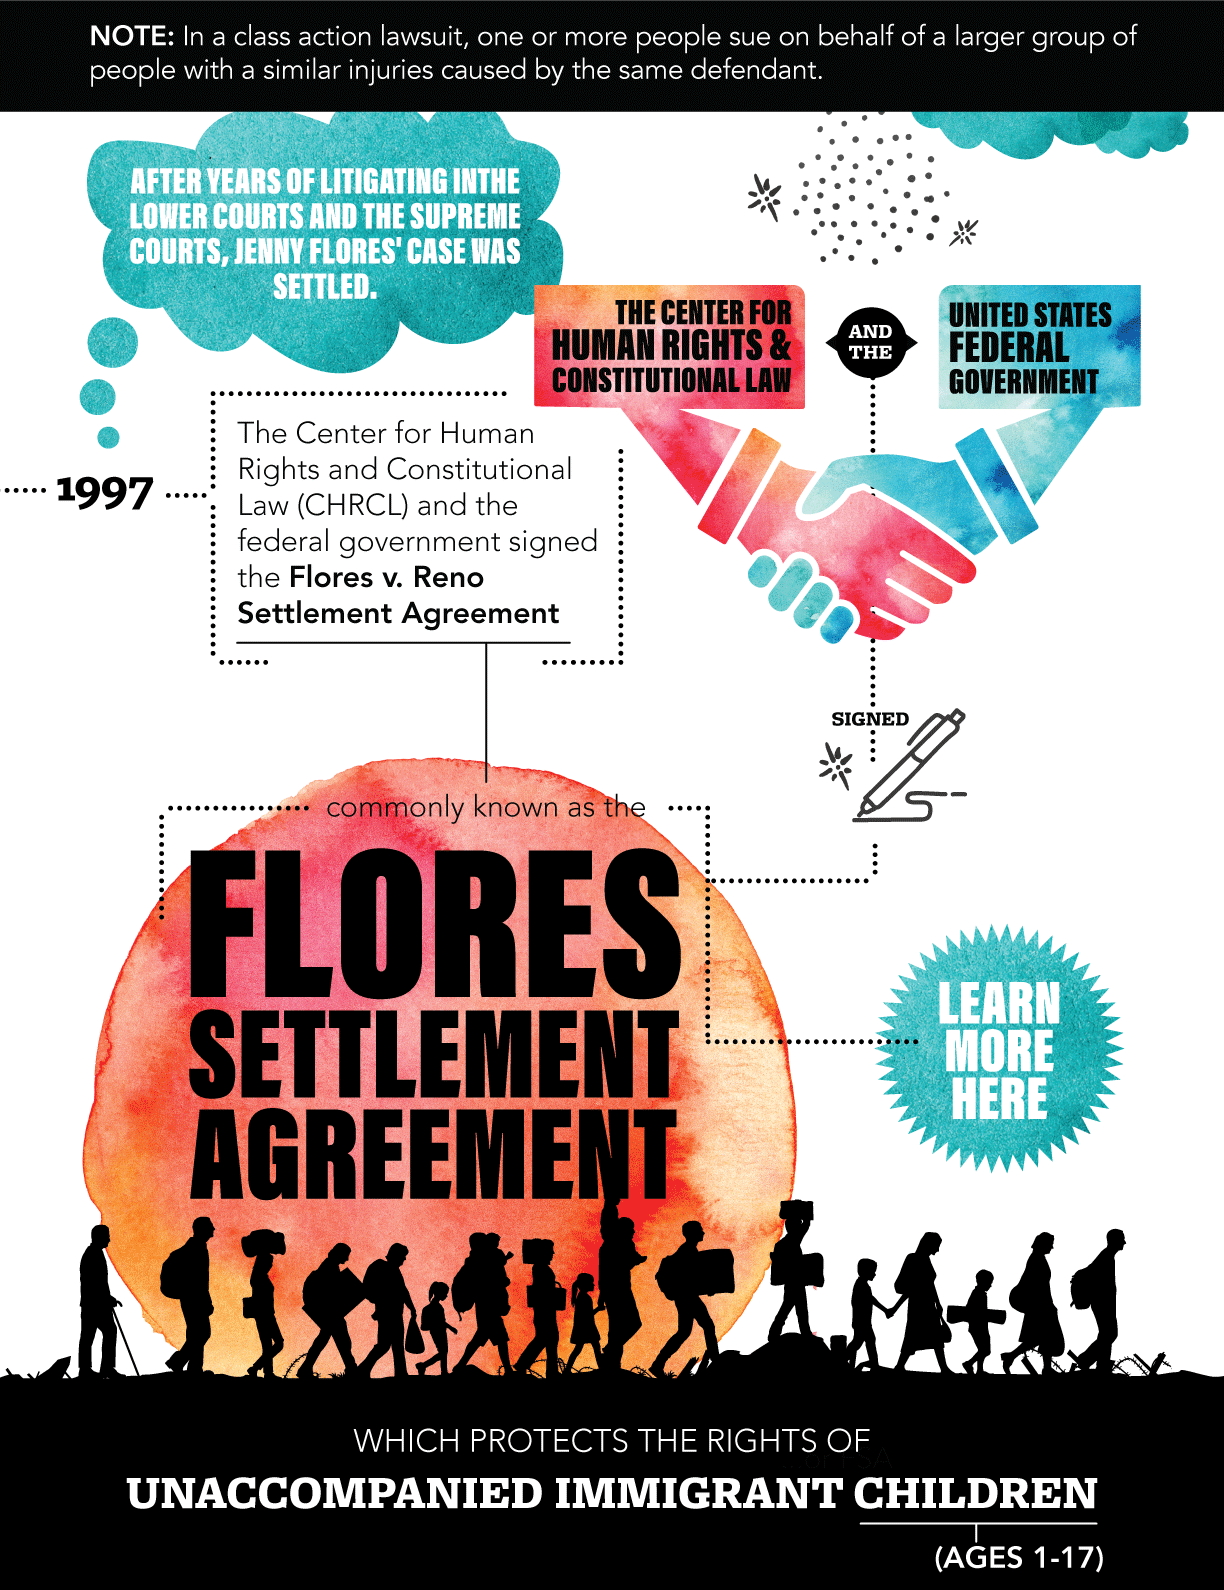 After years of litigating in the lower courts and the supreme courts, Jenny Flores' case was settled. The Center for Human Rights and Constitutional Law (CHRCL) and the federal government signed the Flores v. Reno Settlement Agreement, commonly known as the Flores Settlement Agreement, which protects the rights of unaccompanied immigrant children.